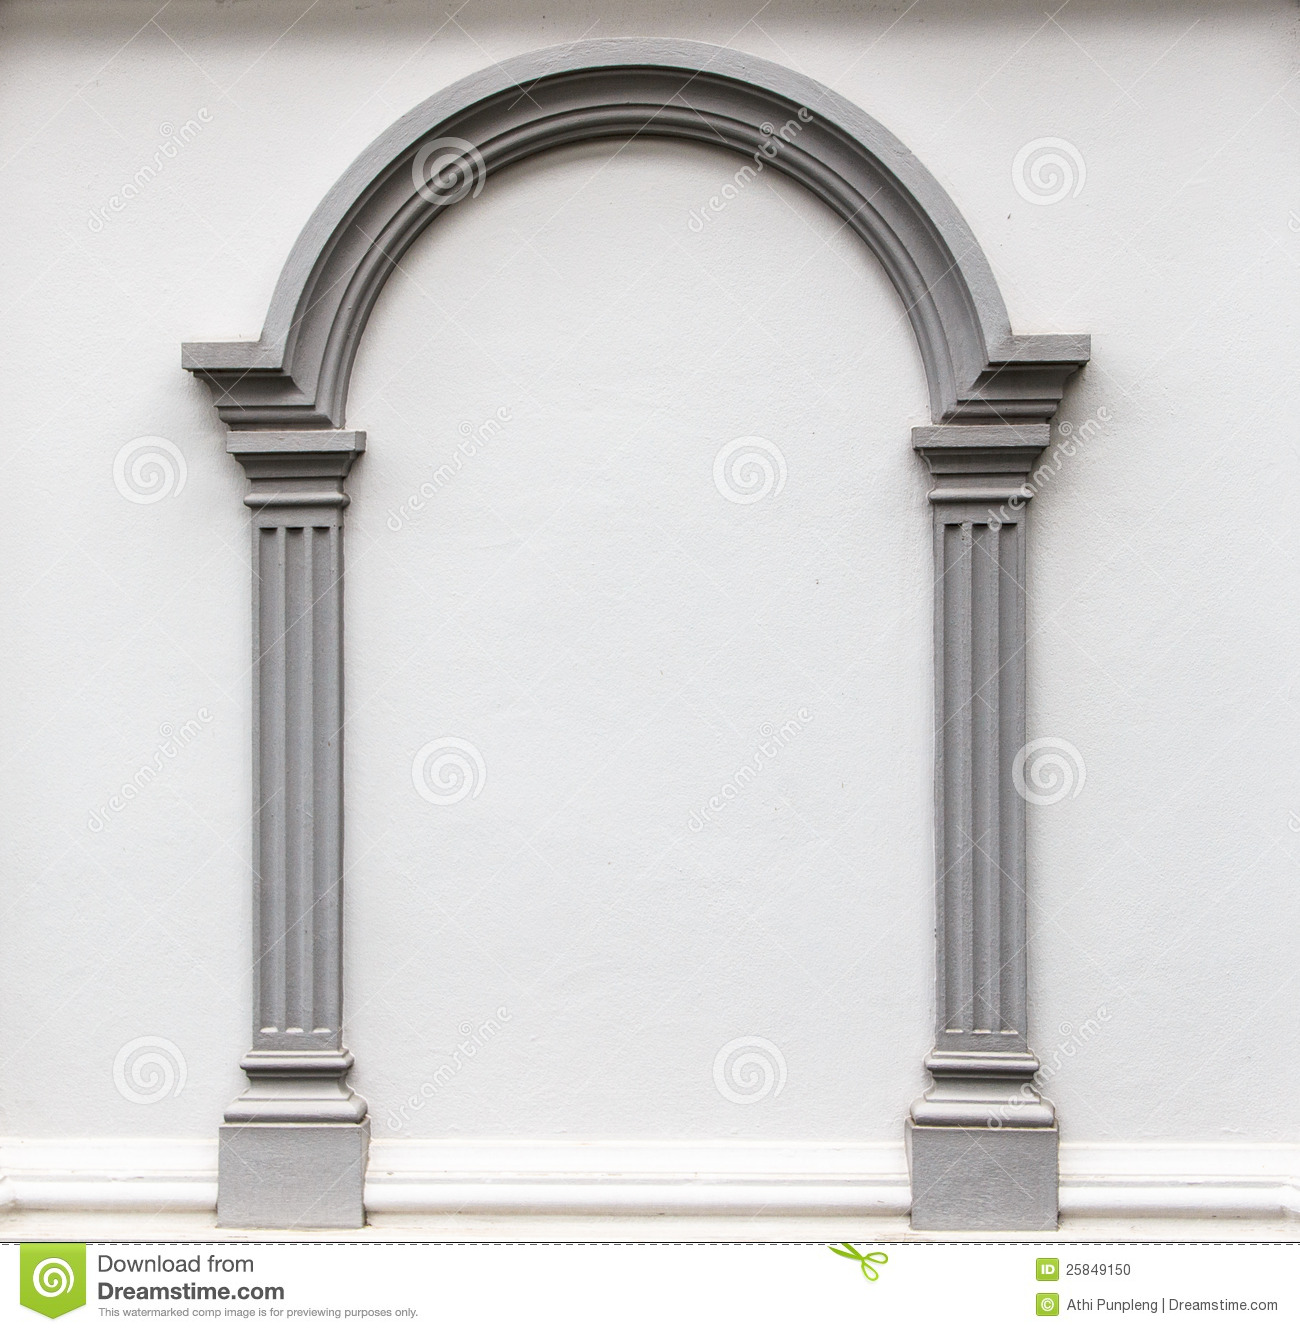 Arch Molding On The Wall Stock Photo - Image: 25849150